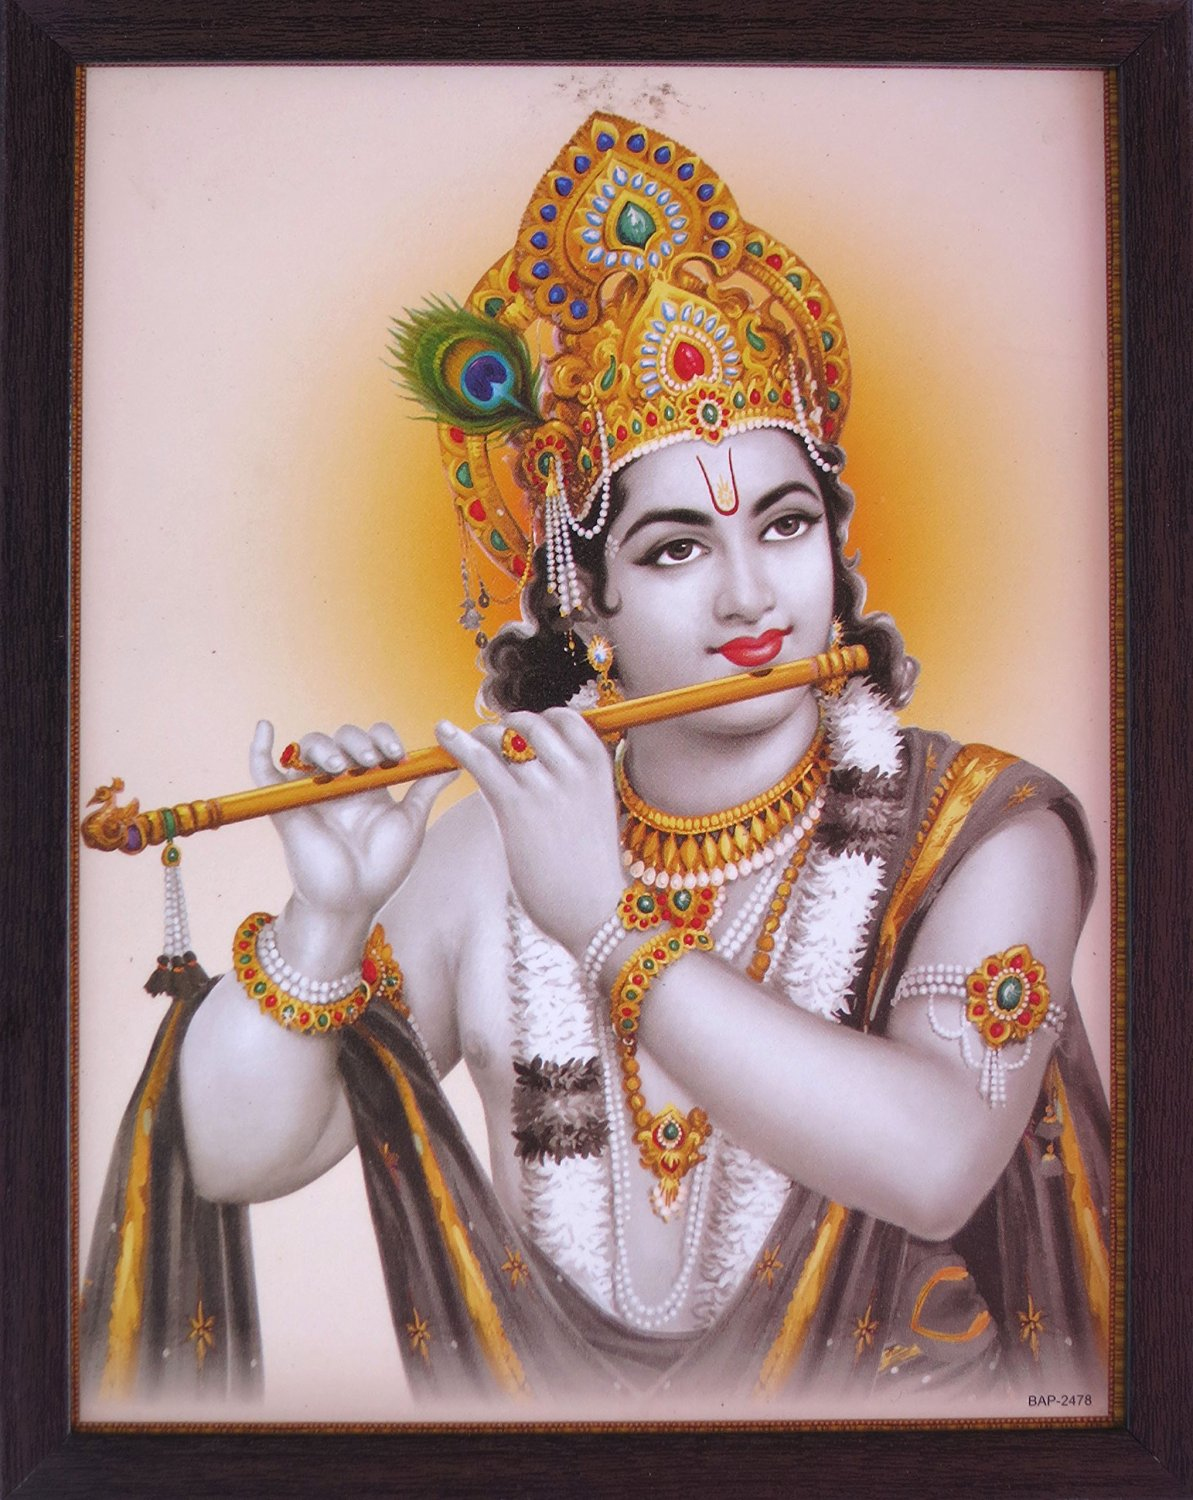 Lord Krishna Playing with His Flute and Wearing Garland, a Religious & Elegant Posture with Frame, Must for Office / Home / Religious